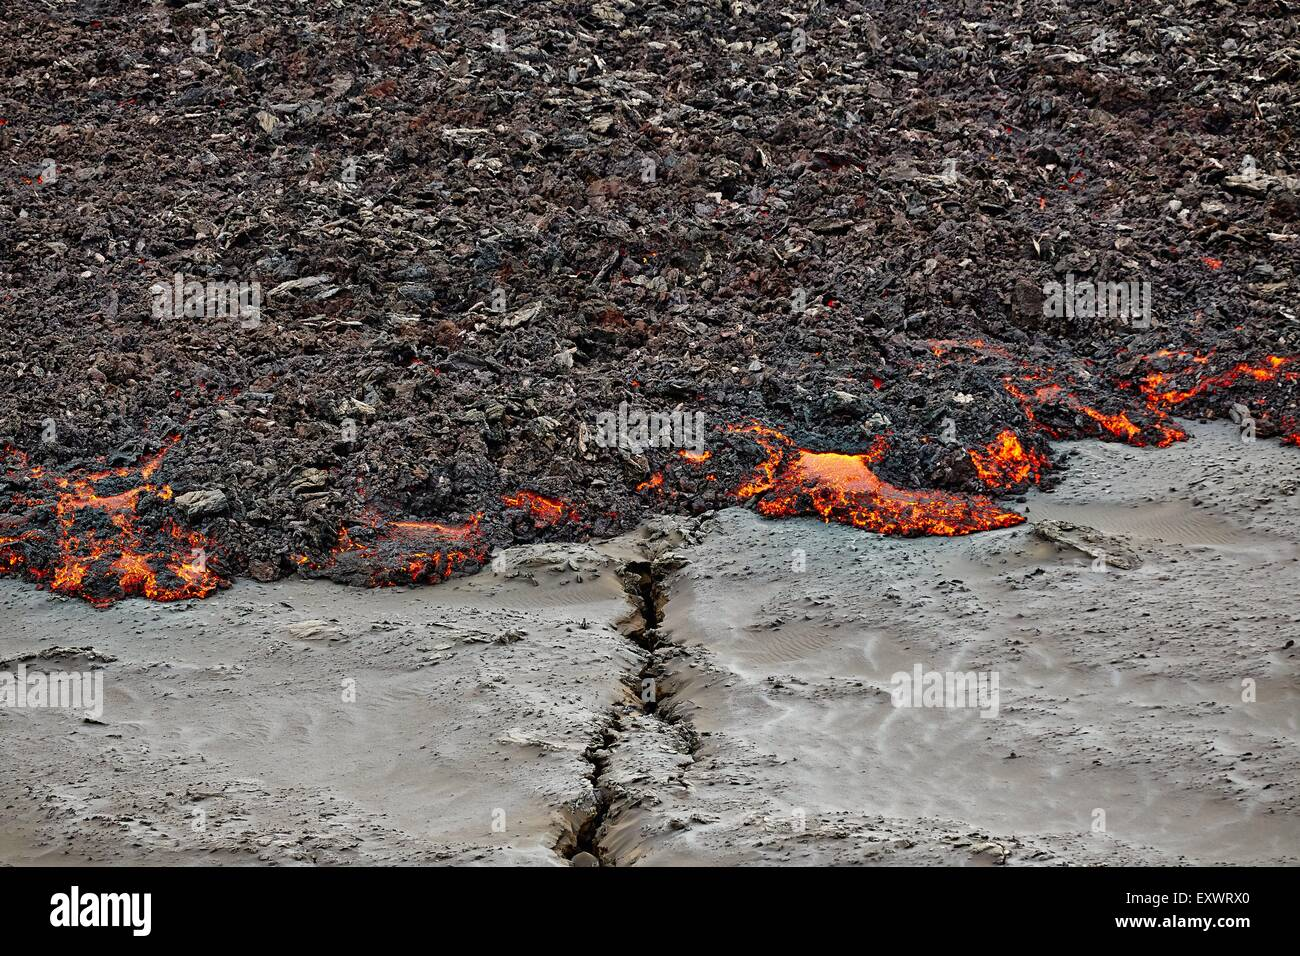 Volcano Bardarbunga, crack in ground at lava field Holuhraun at Sept 2nd 2014, Iceland - Stock Image